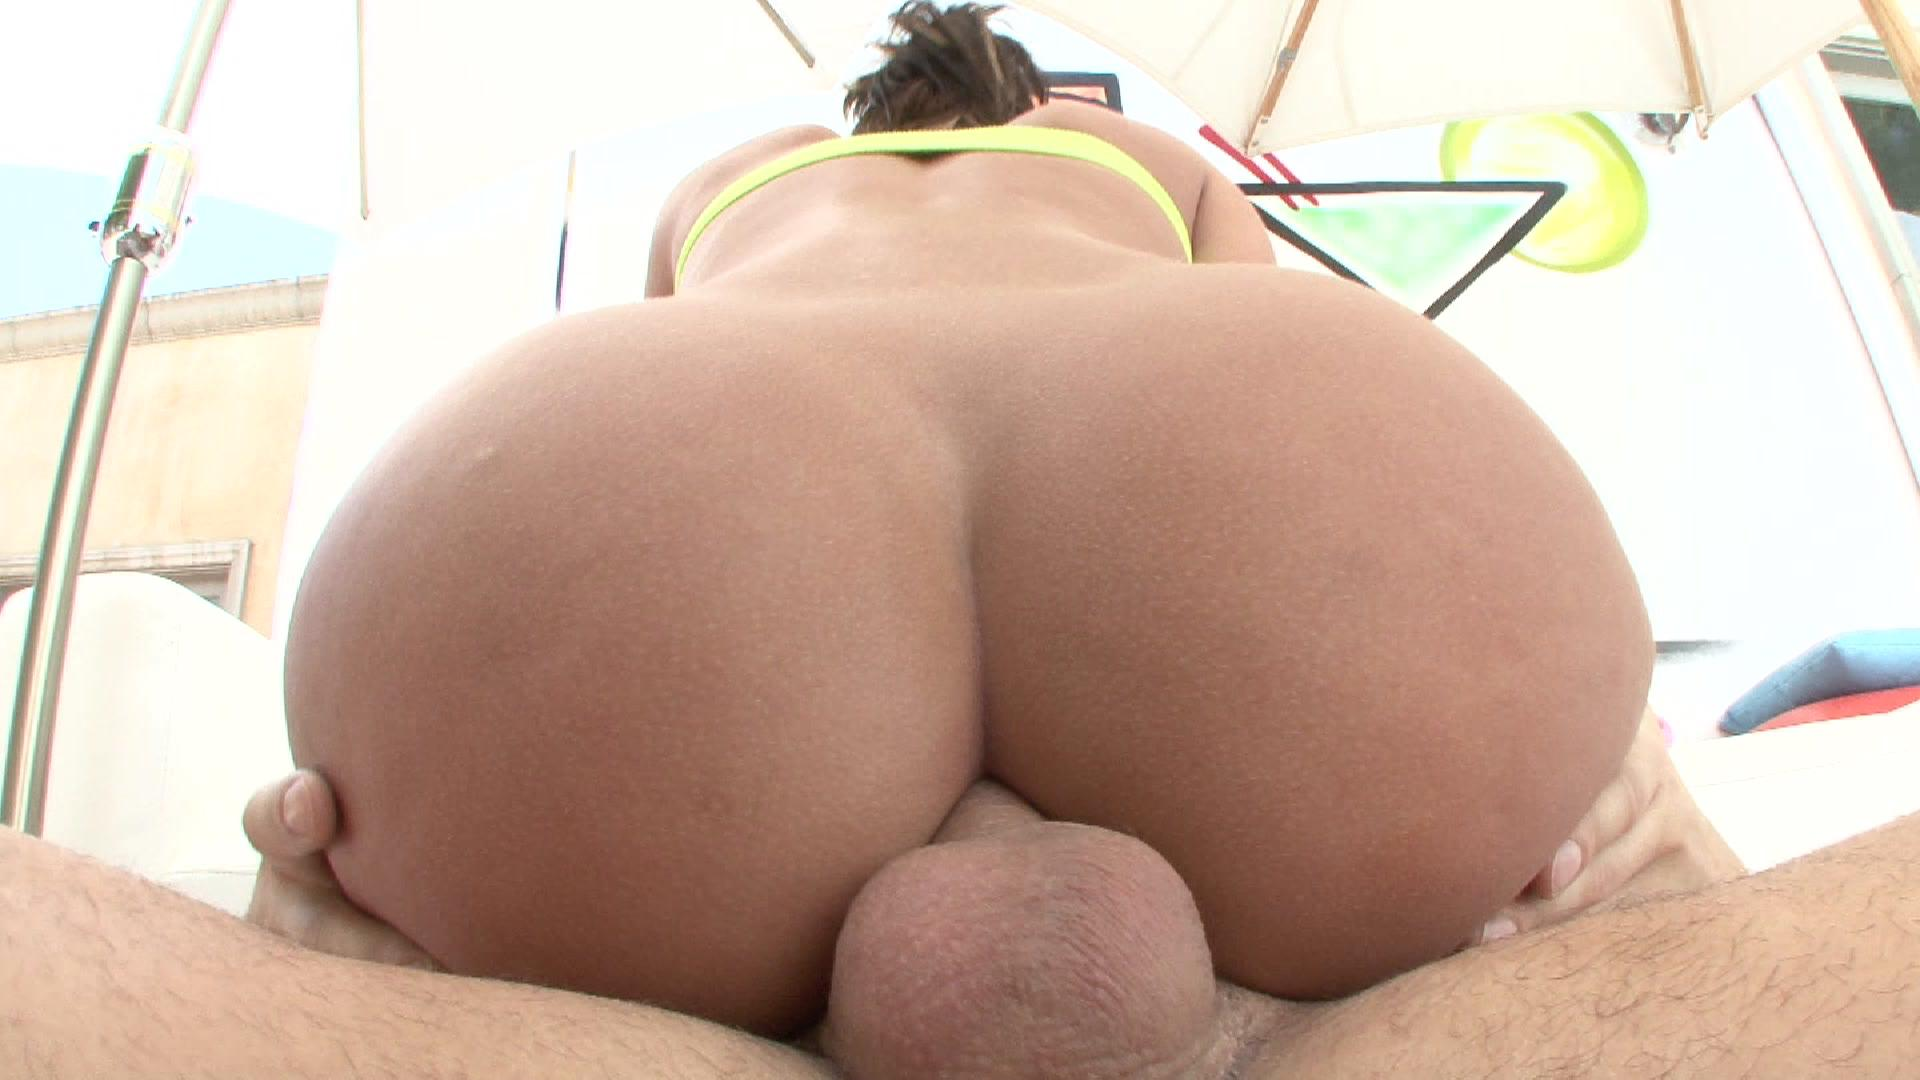 streaming ass porn jpg 1200x900